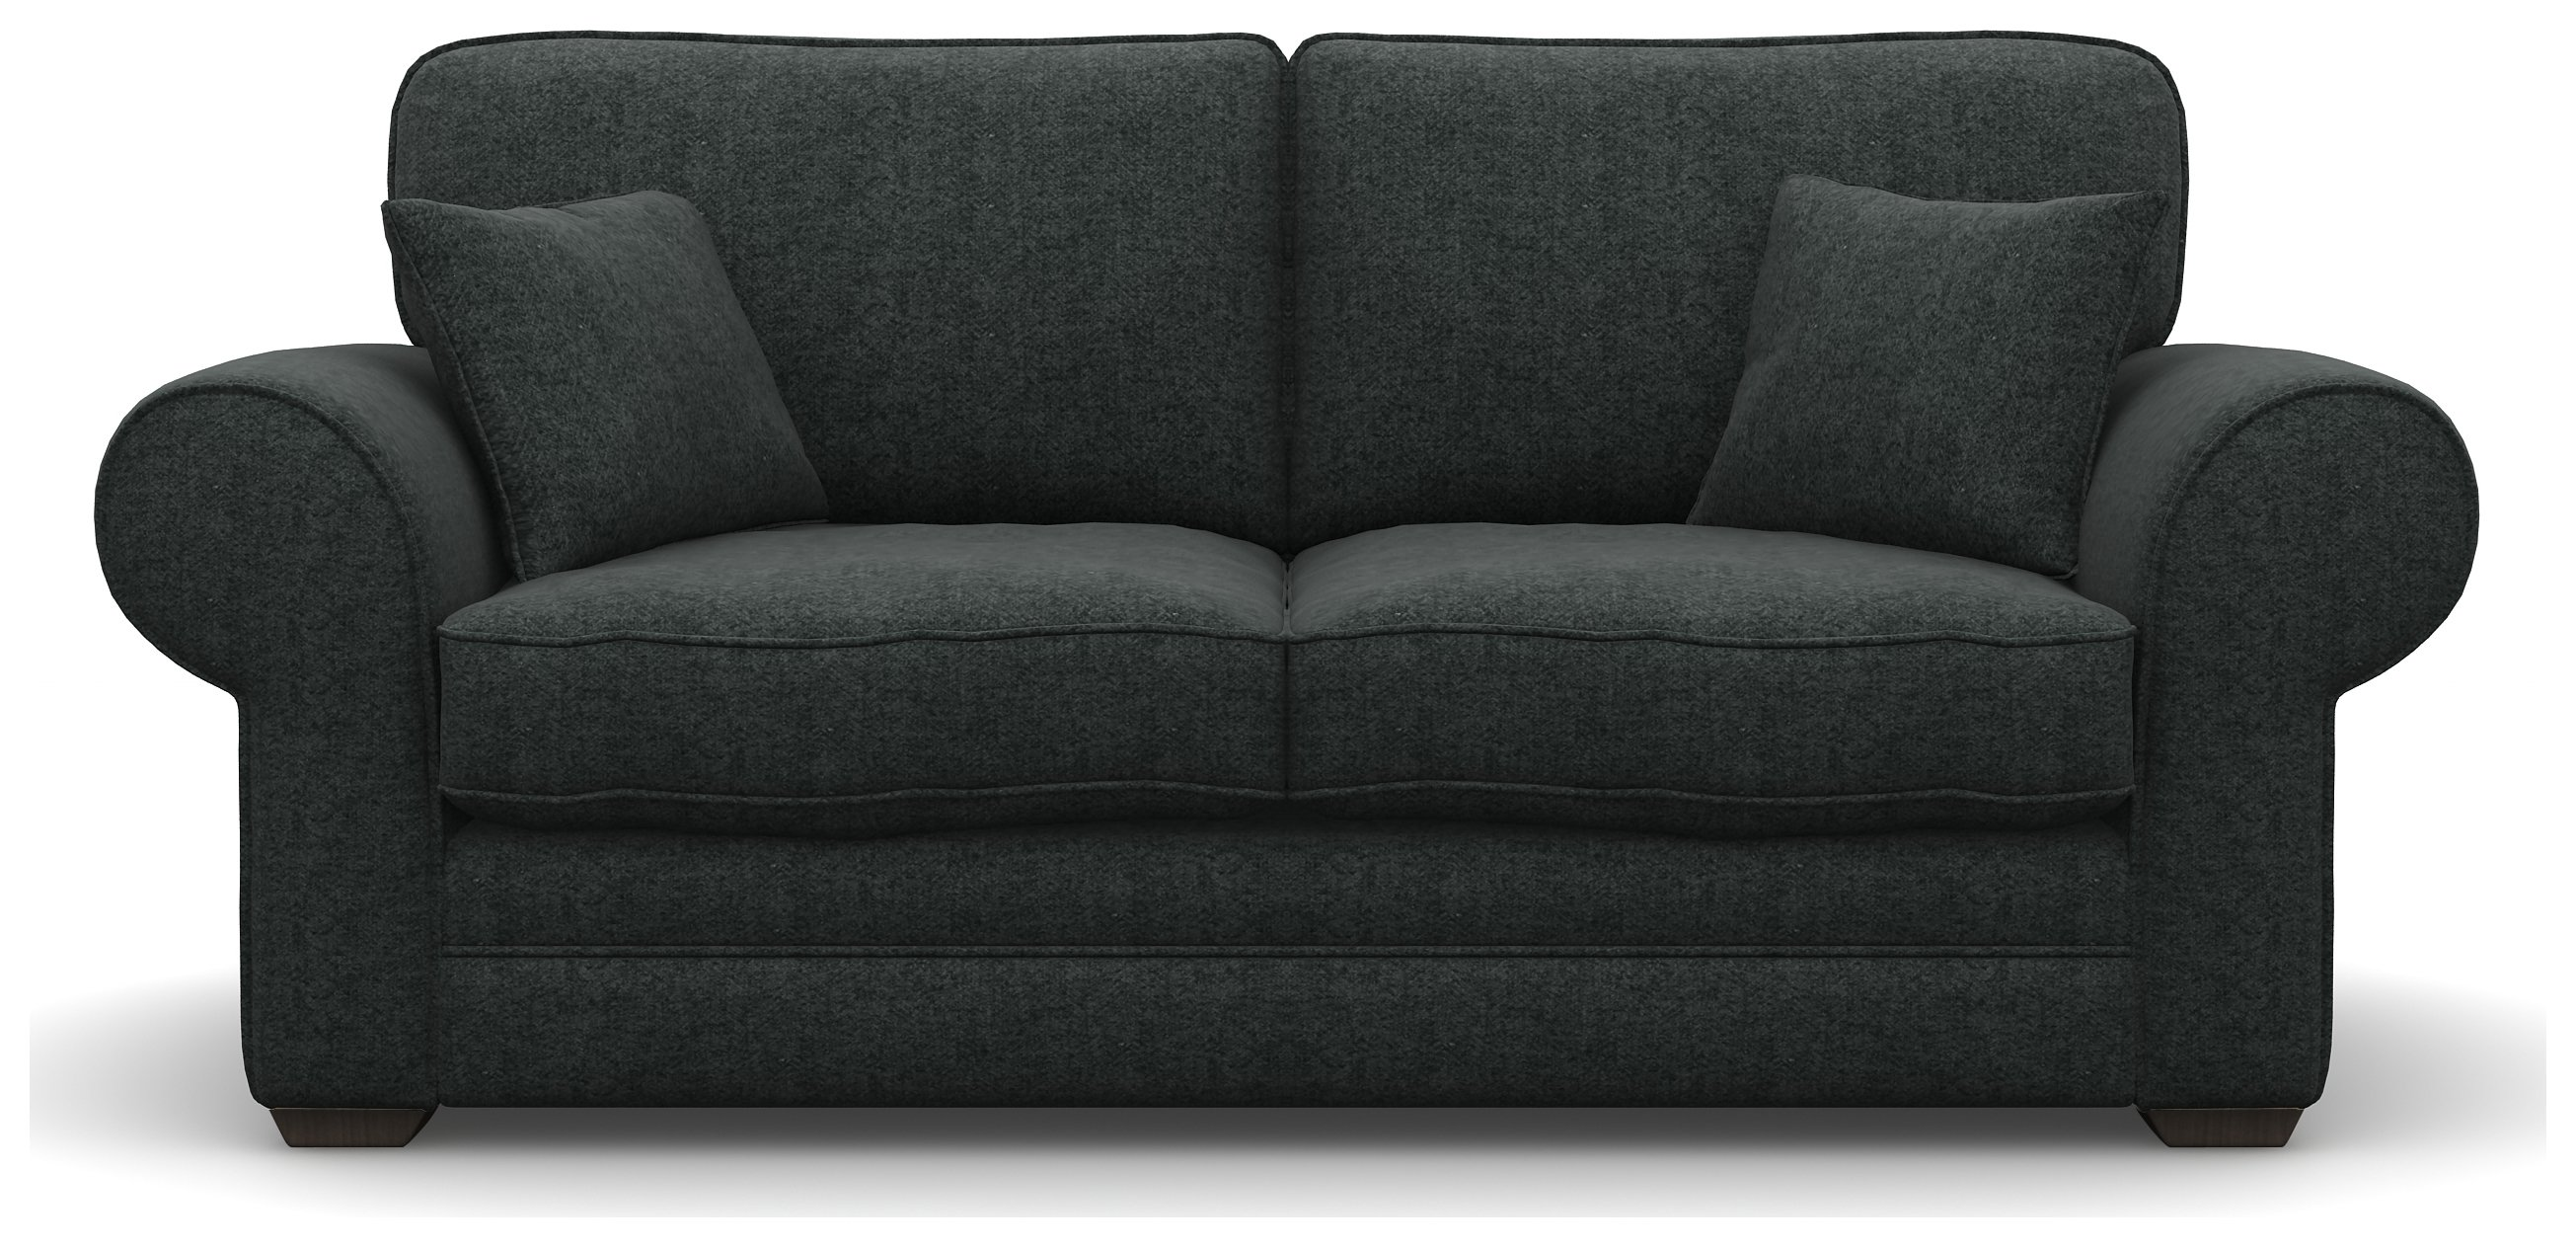 Heart of House Chedworth 2 Seat Tweed Fabric Sofa - Charcoal